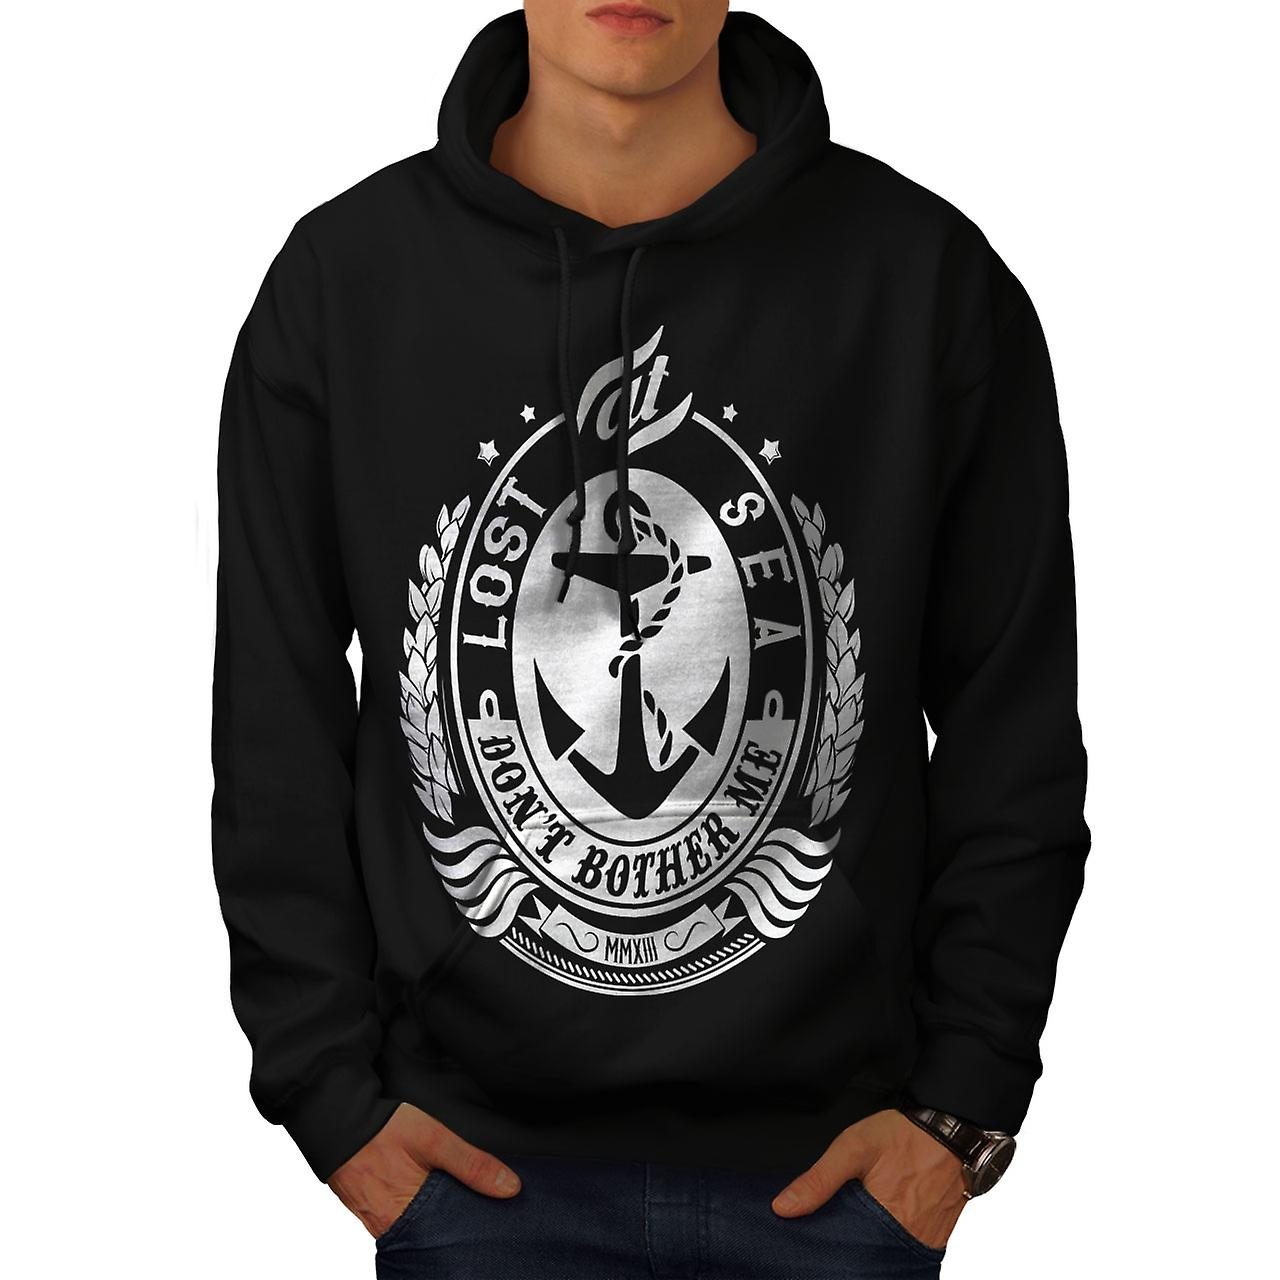 Don't Bother Me Slogan Men Black Hoodie | Wellcoda